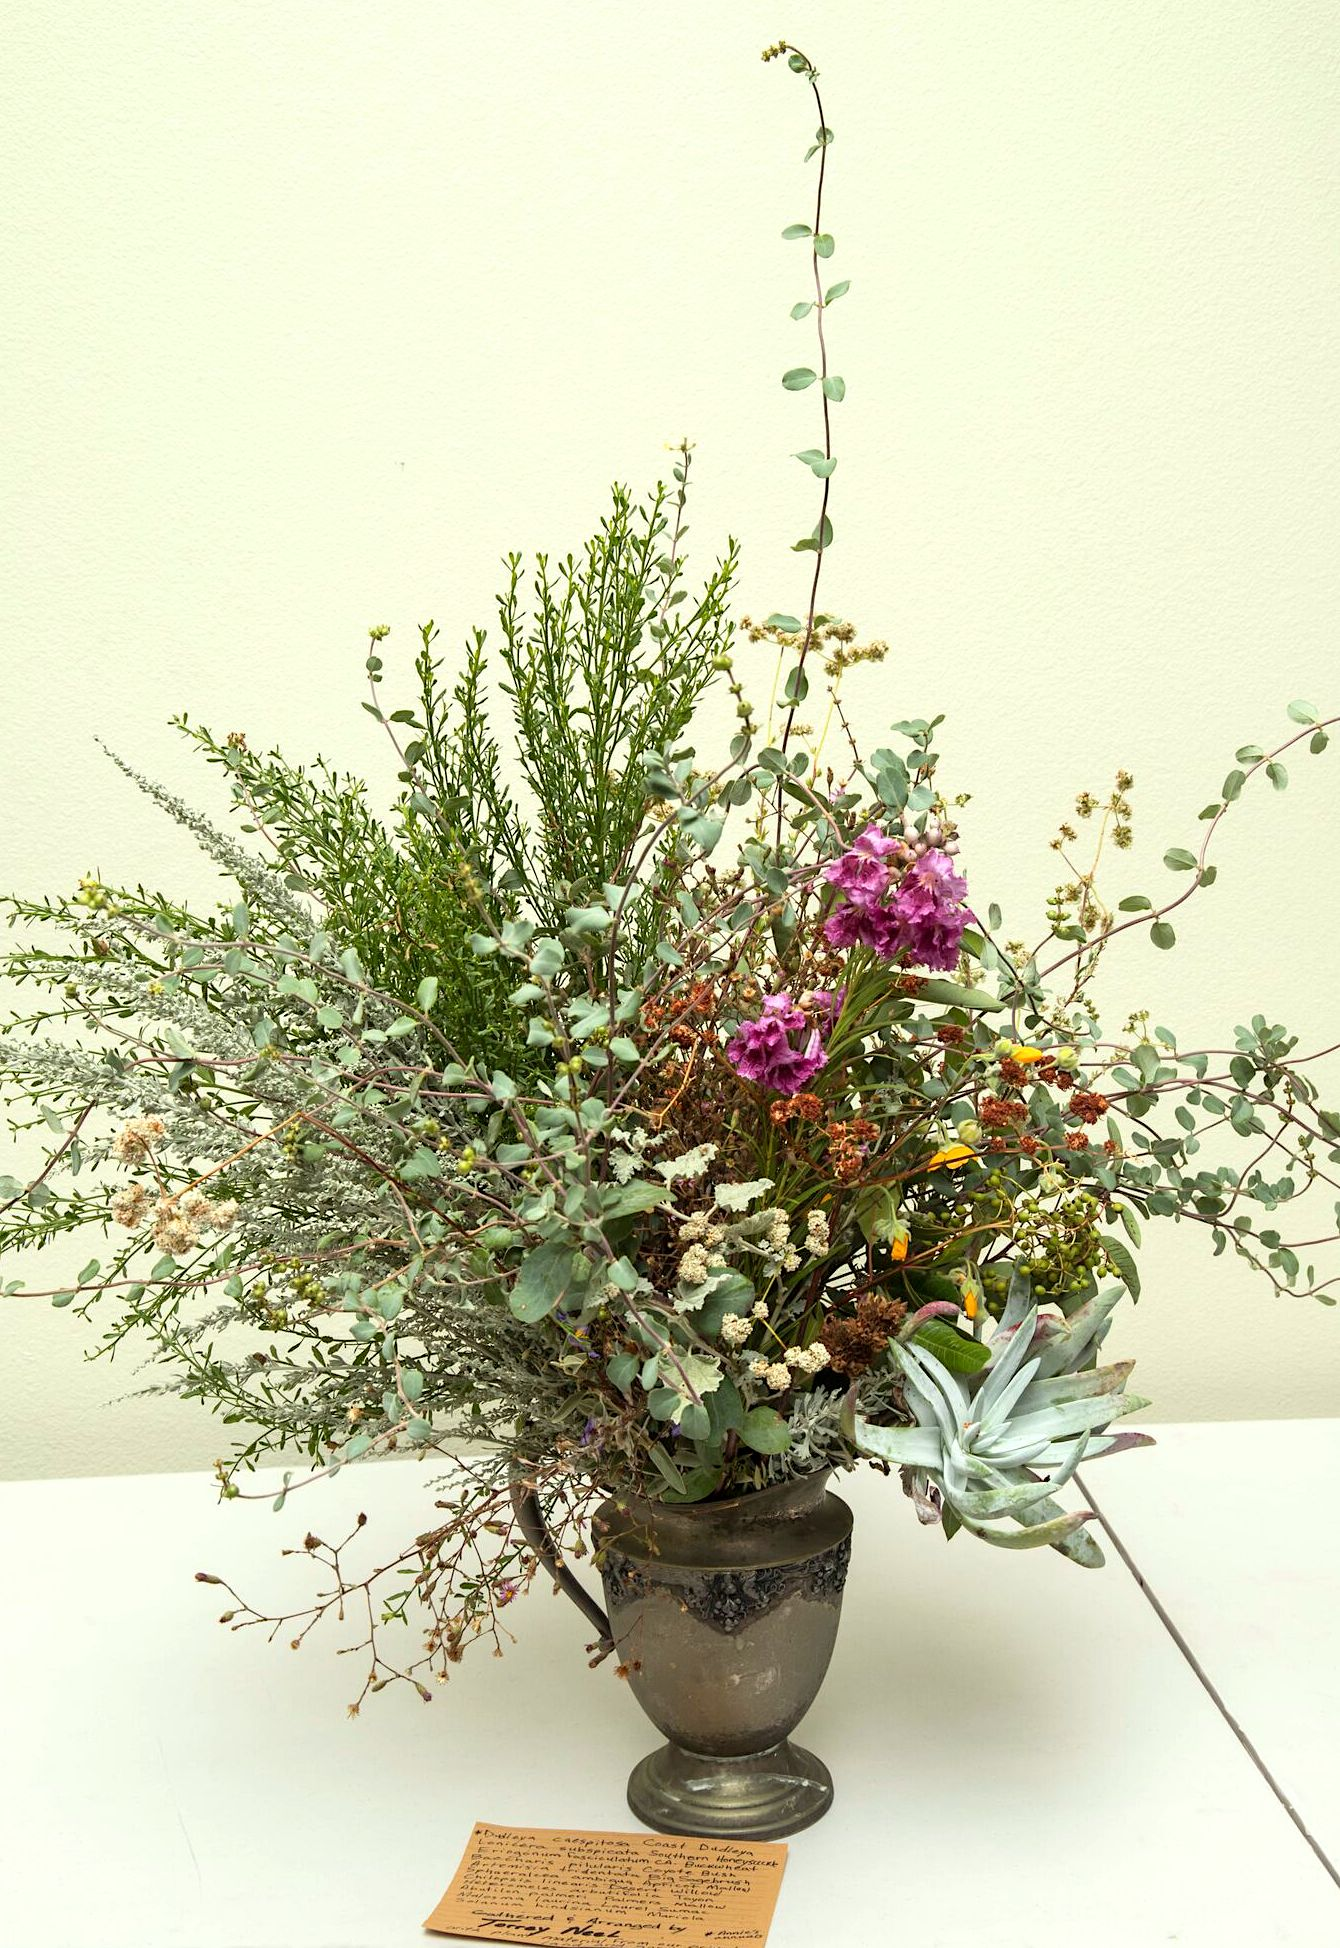 A second CA native flower arrangement by Torrey Neel